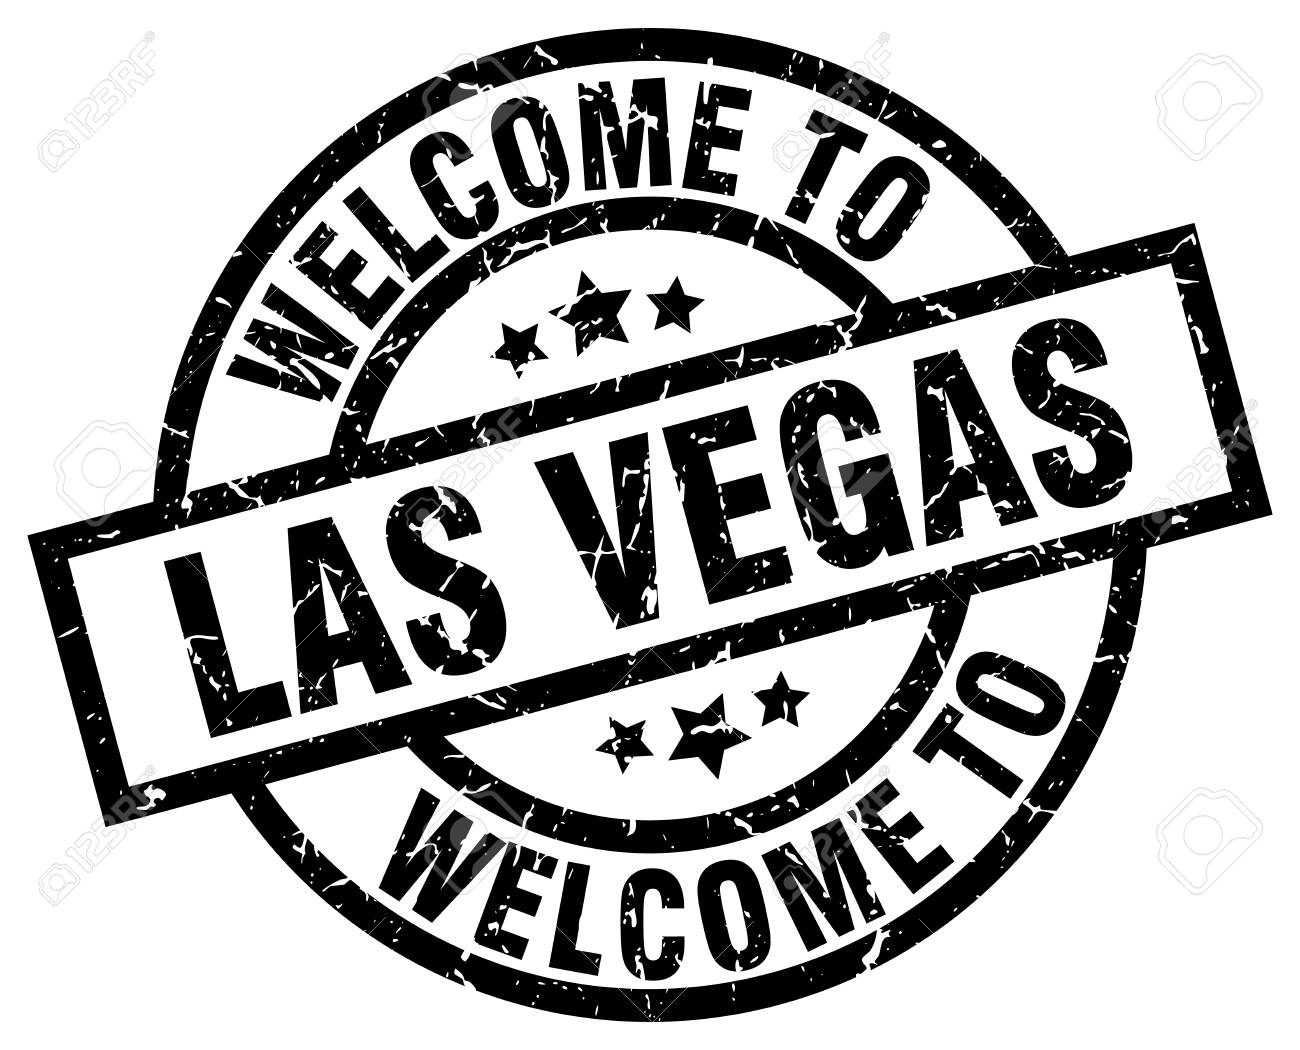 Welcome To Las Vegas Black Stamp Royalty Free Cliparts Vectors And